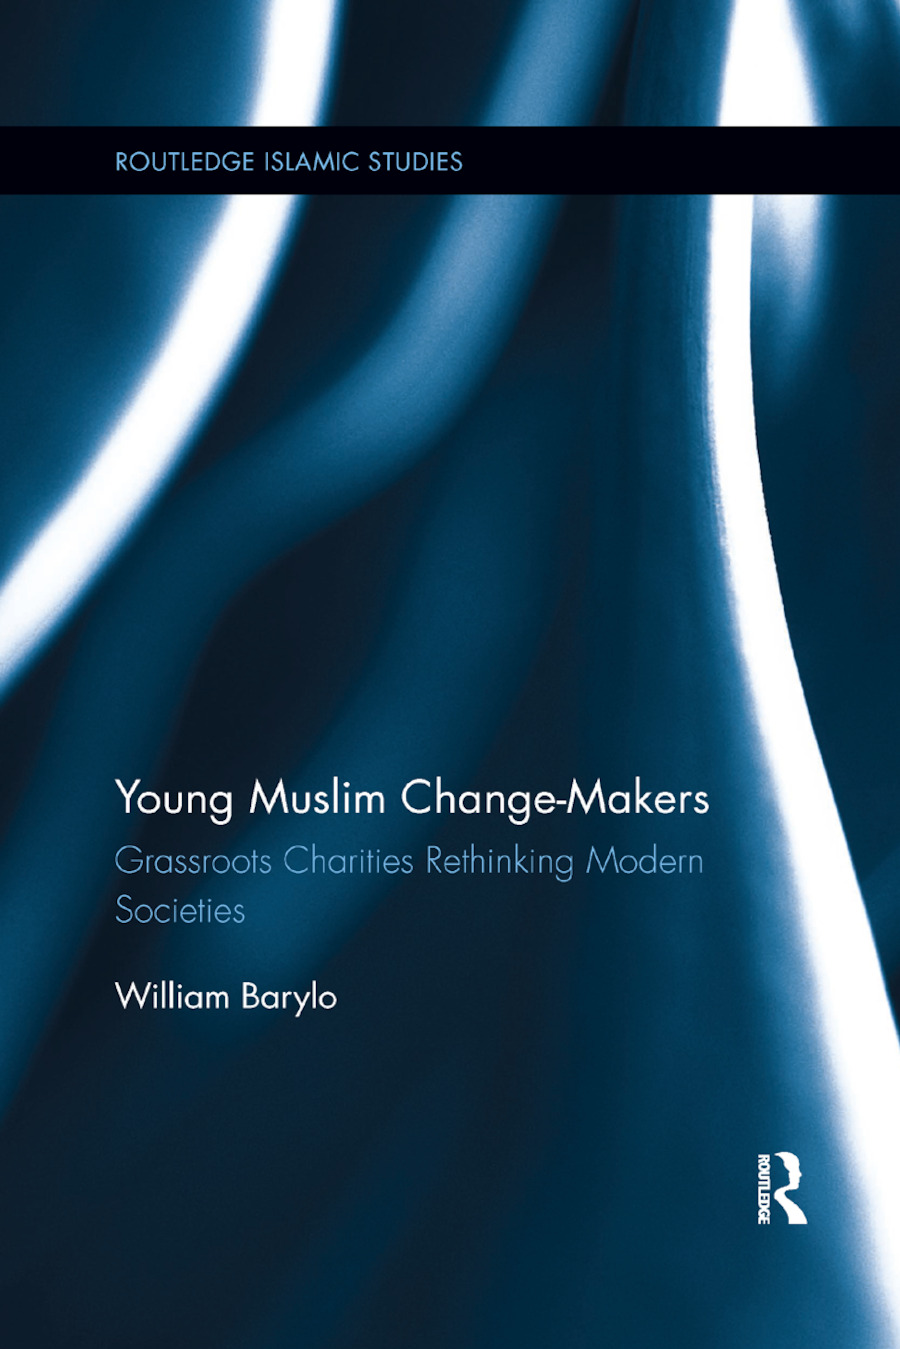 Young Muslim Change-Makers: Grassroots Charities Rethinking Modern Societies book cover